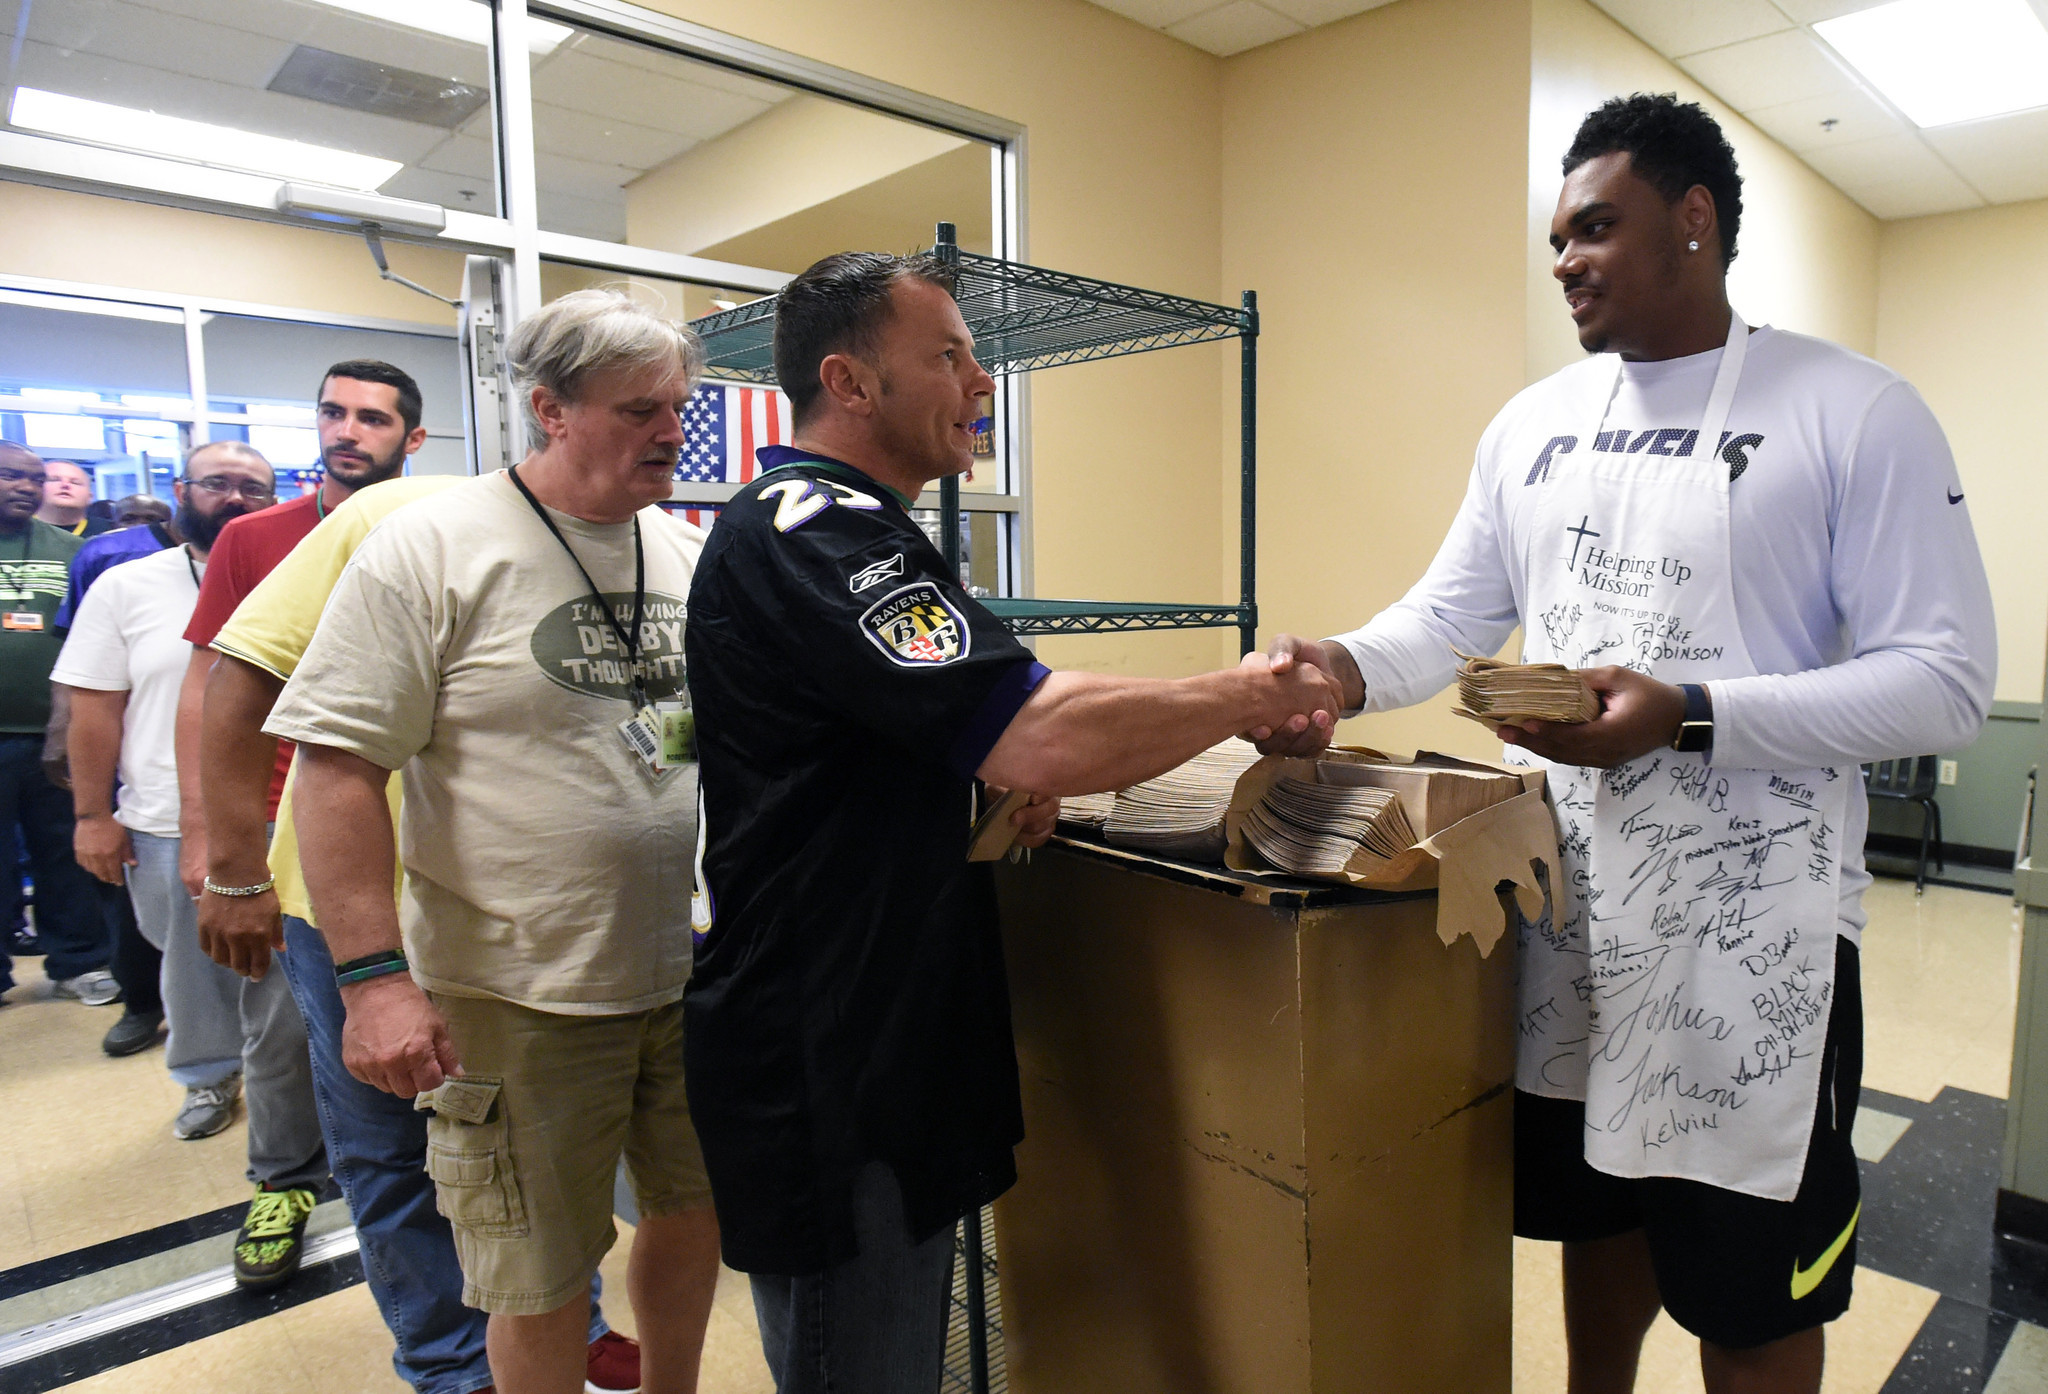 Bal-ravens-rookie-orientation-continues-with-helping-up-mission-event-20160620